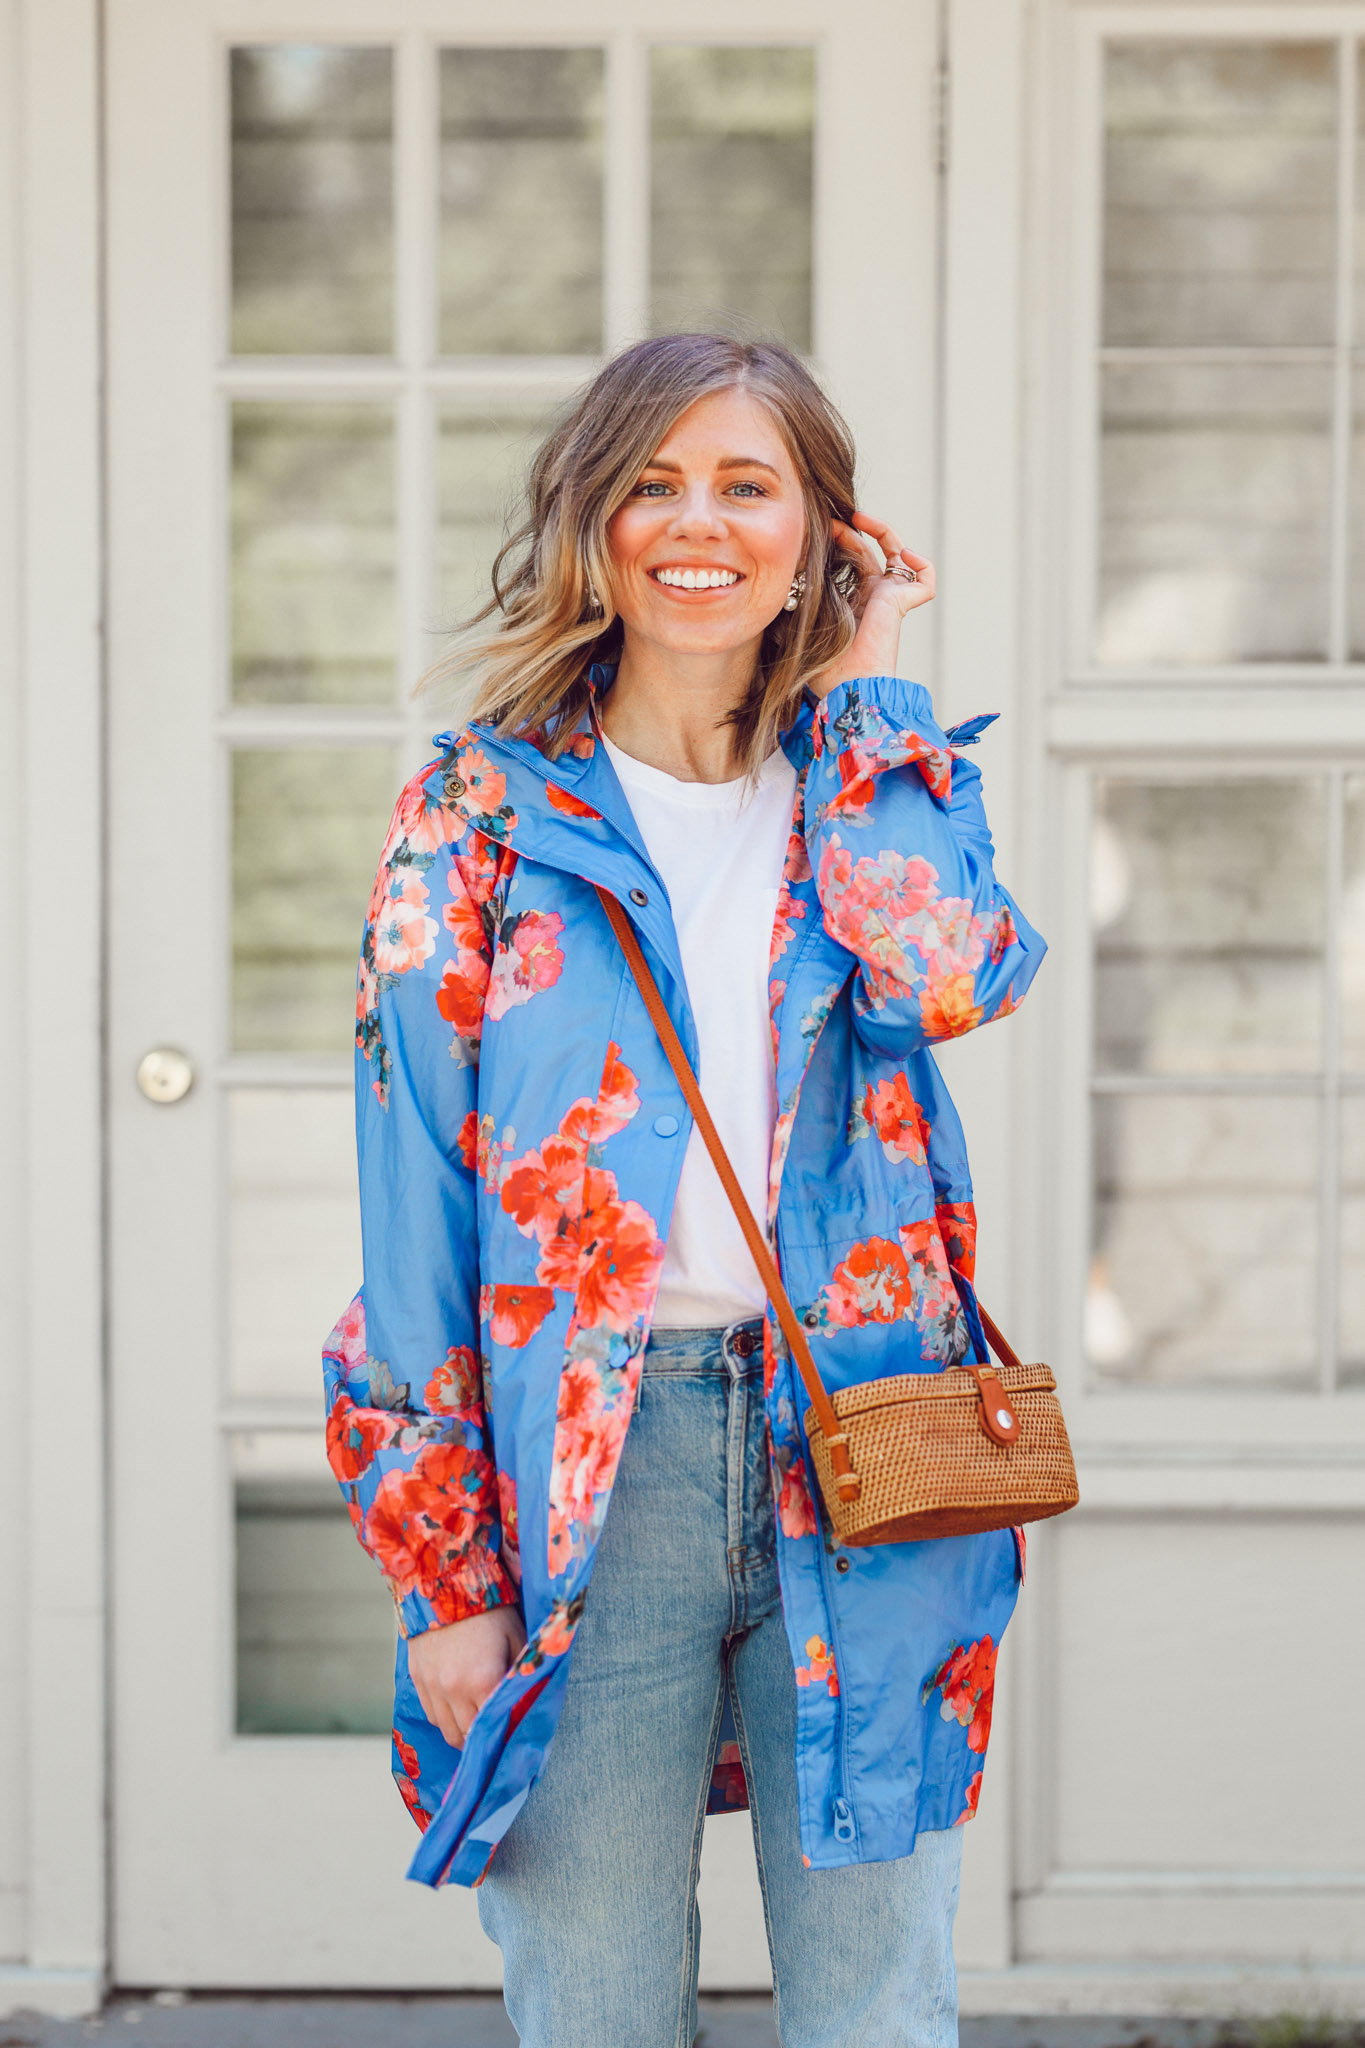 The Cutest Rain Jacket for Spring Showers | ft. Joules, Everlane | Louella Reese